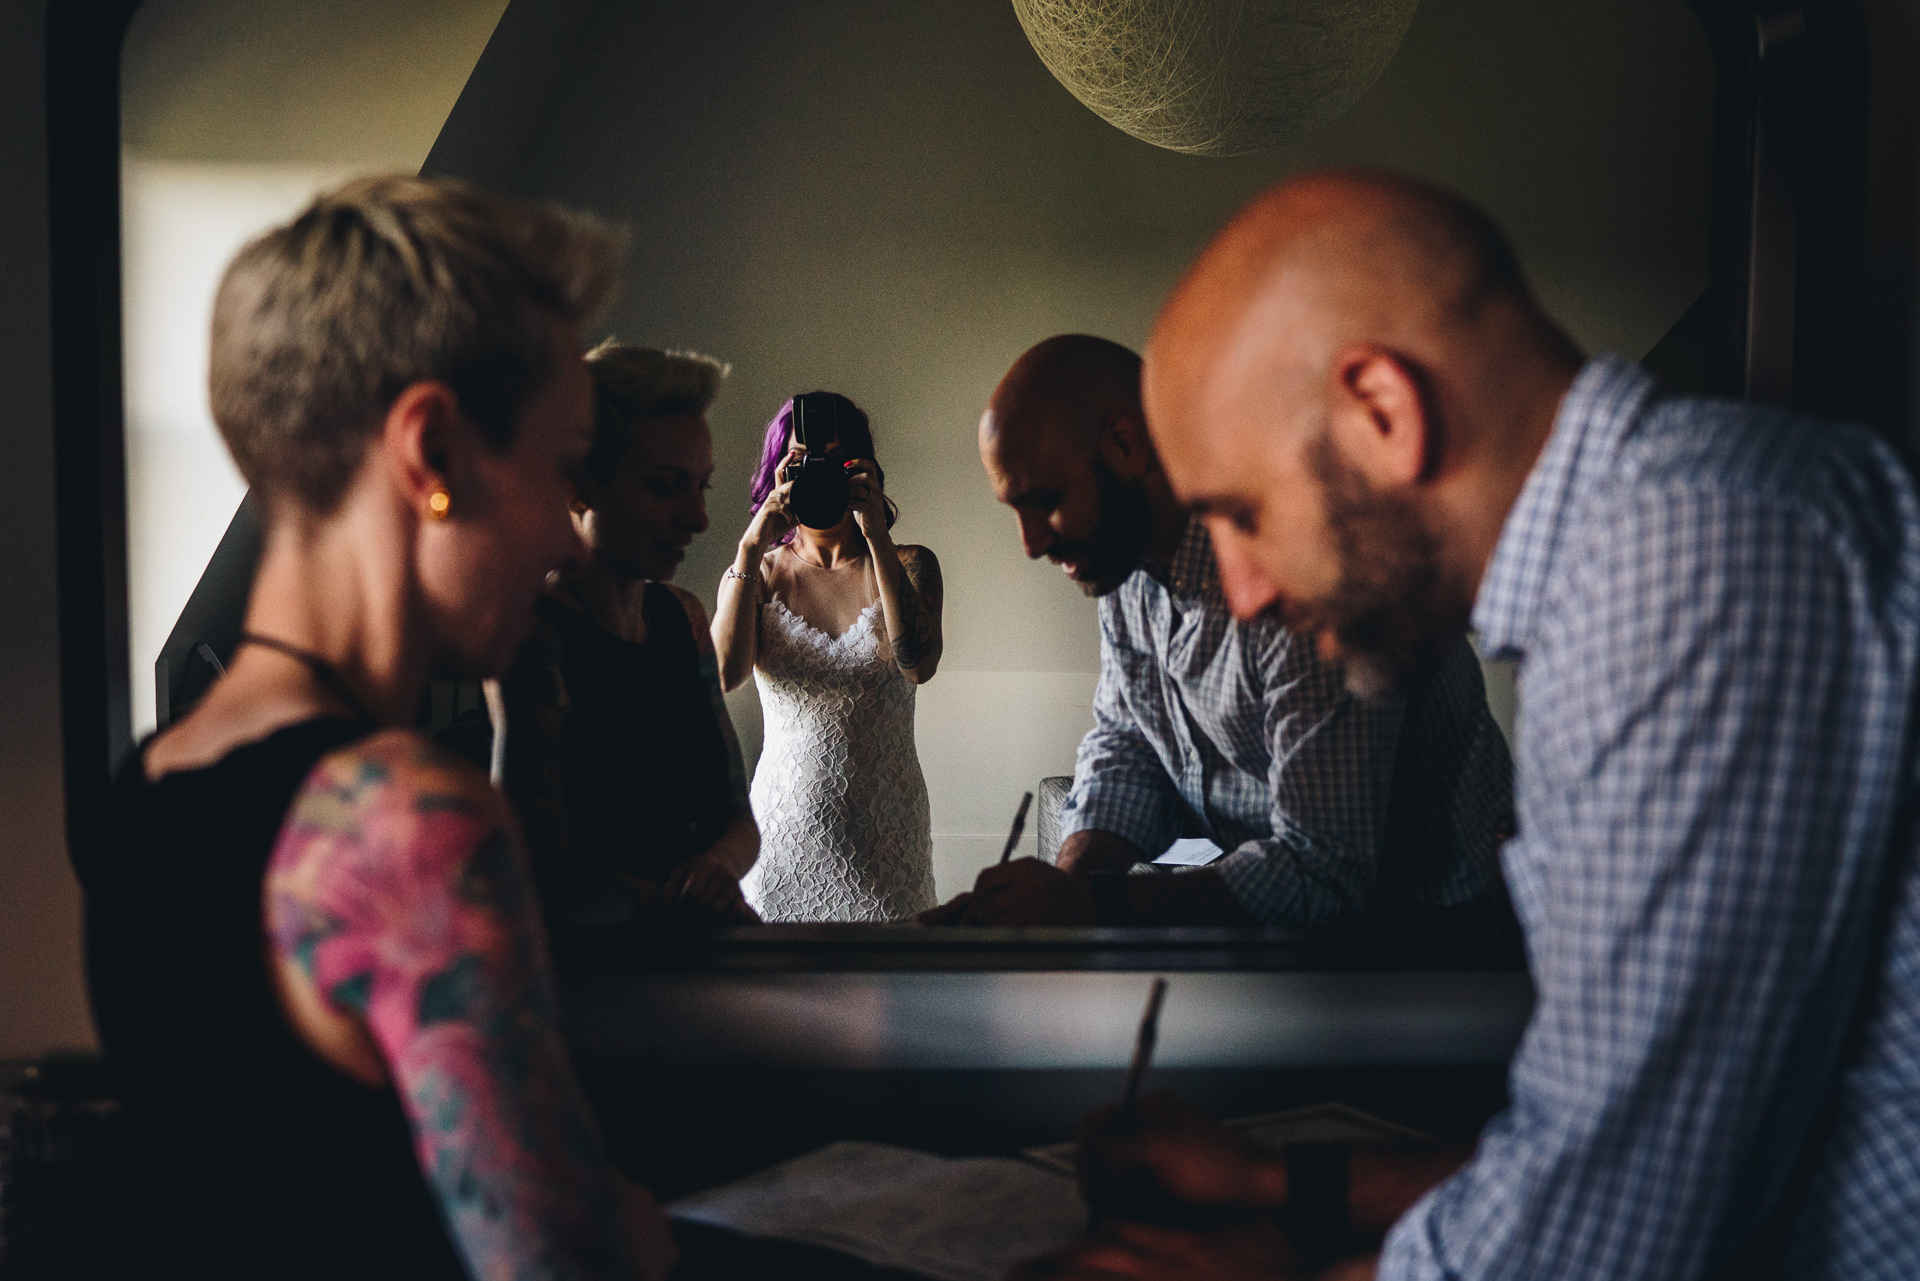 The photo we used as episode art is from Andy Buscemi. He's actually the guy signing the marriage license in the photo (as the witness). His bride picked up his camera after he set it down and took a photo of him (and we love that story).